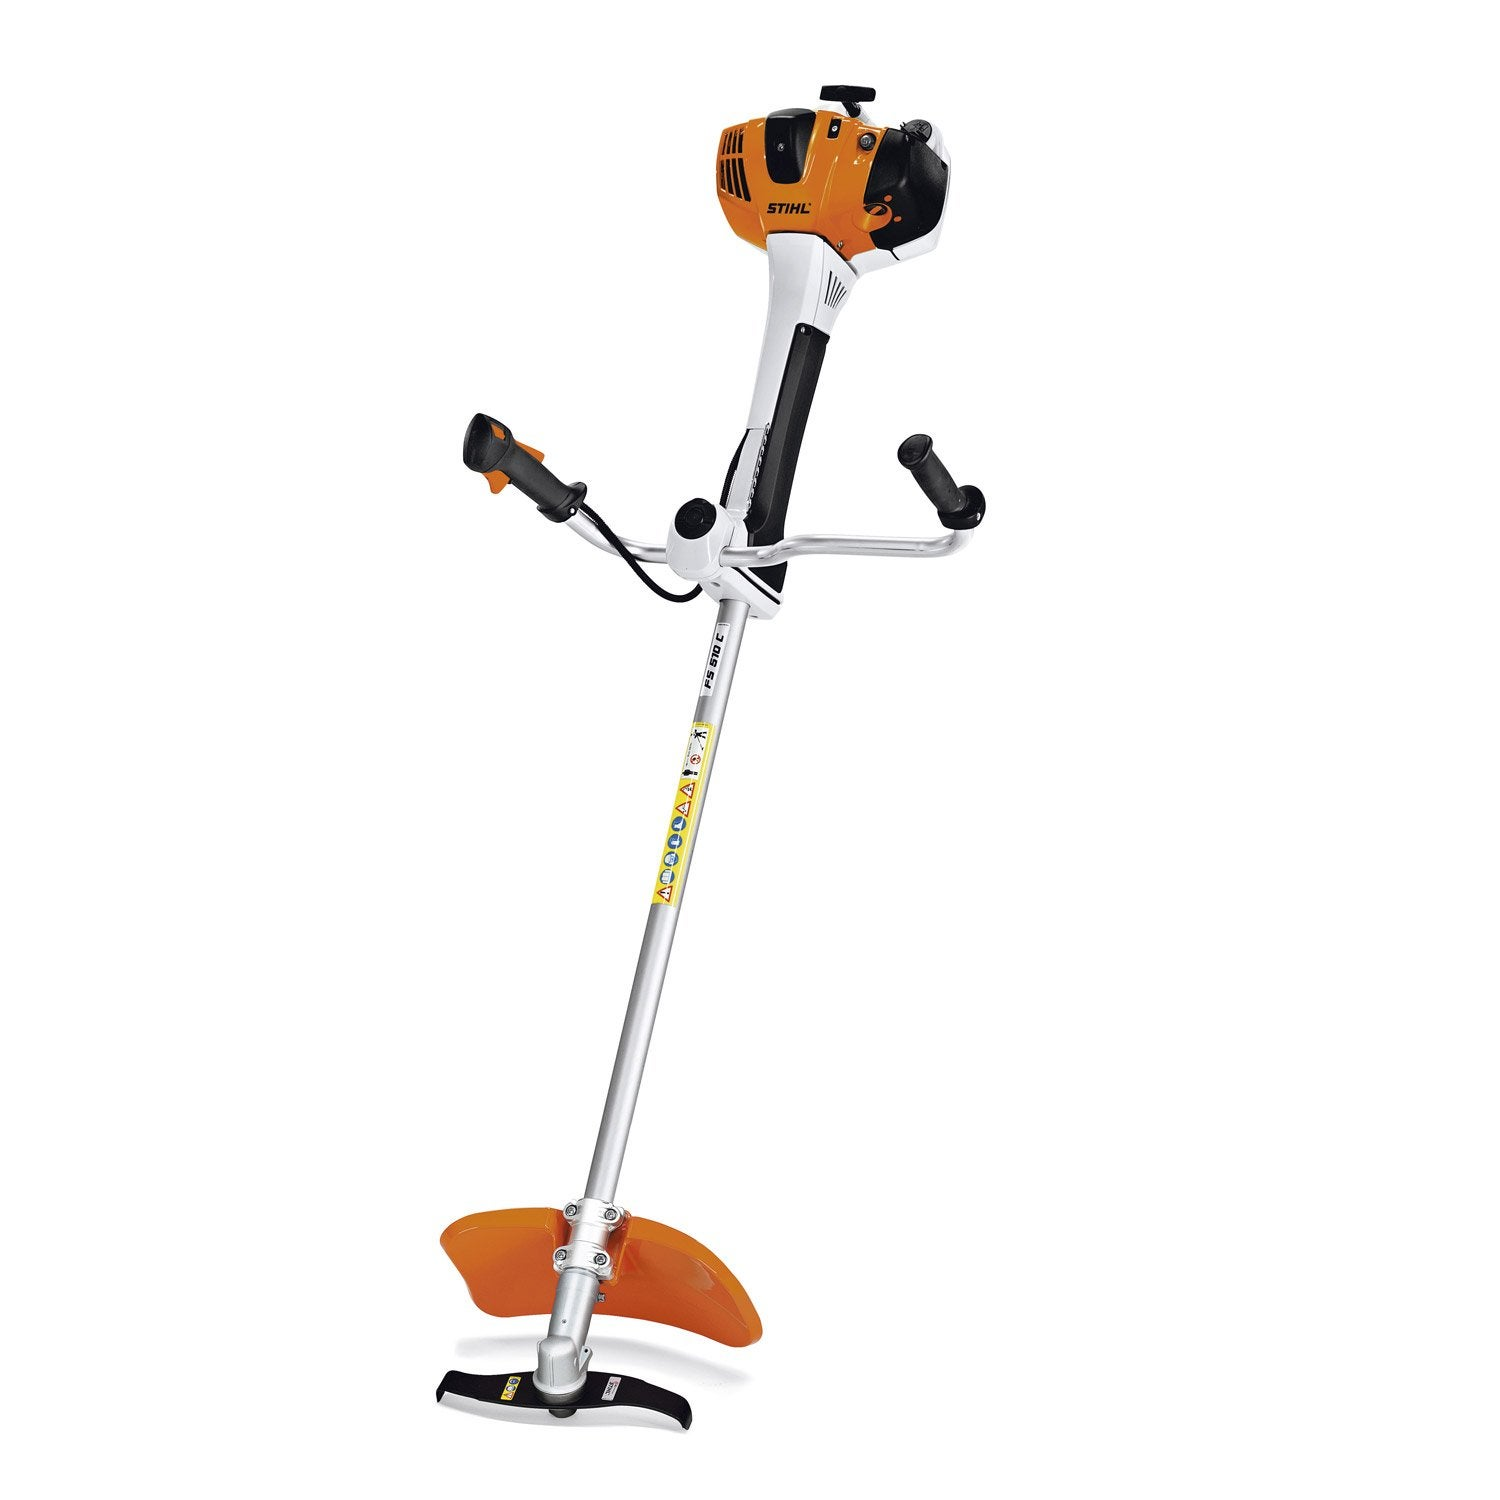 d broussailleuse essence stihl fs560cem cm leroy merlin. Black Bedroom Furniture Sets. Home Design Ideas